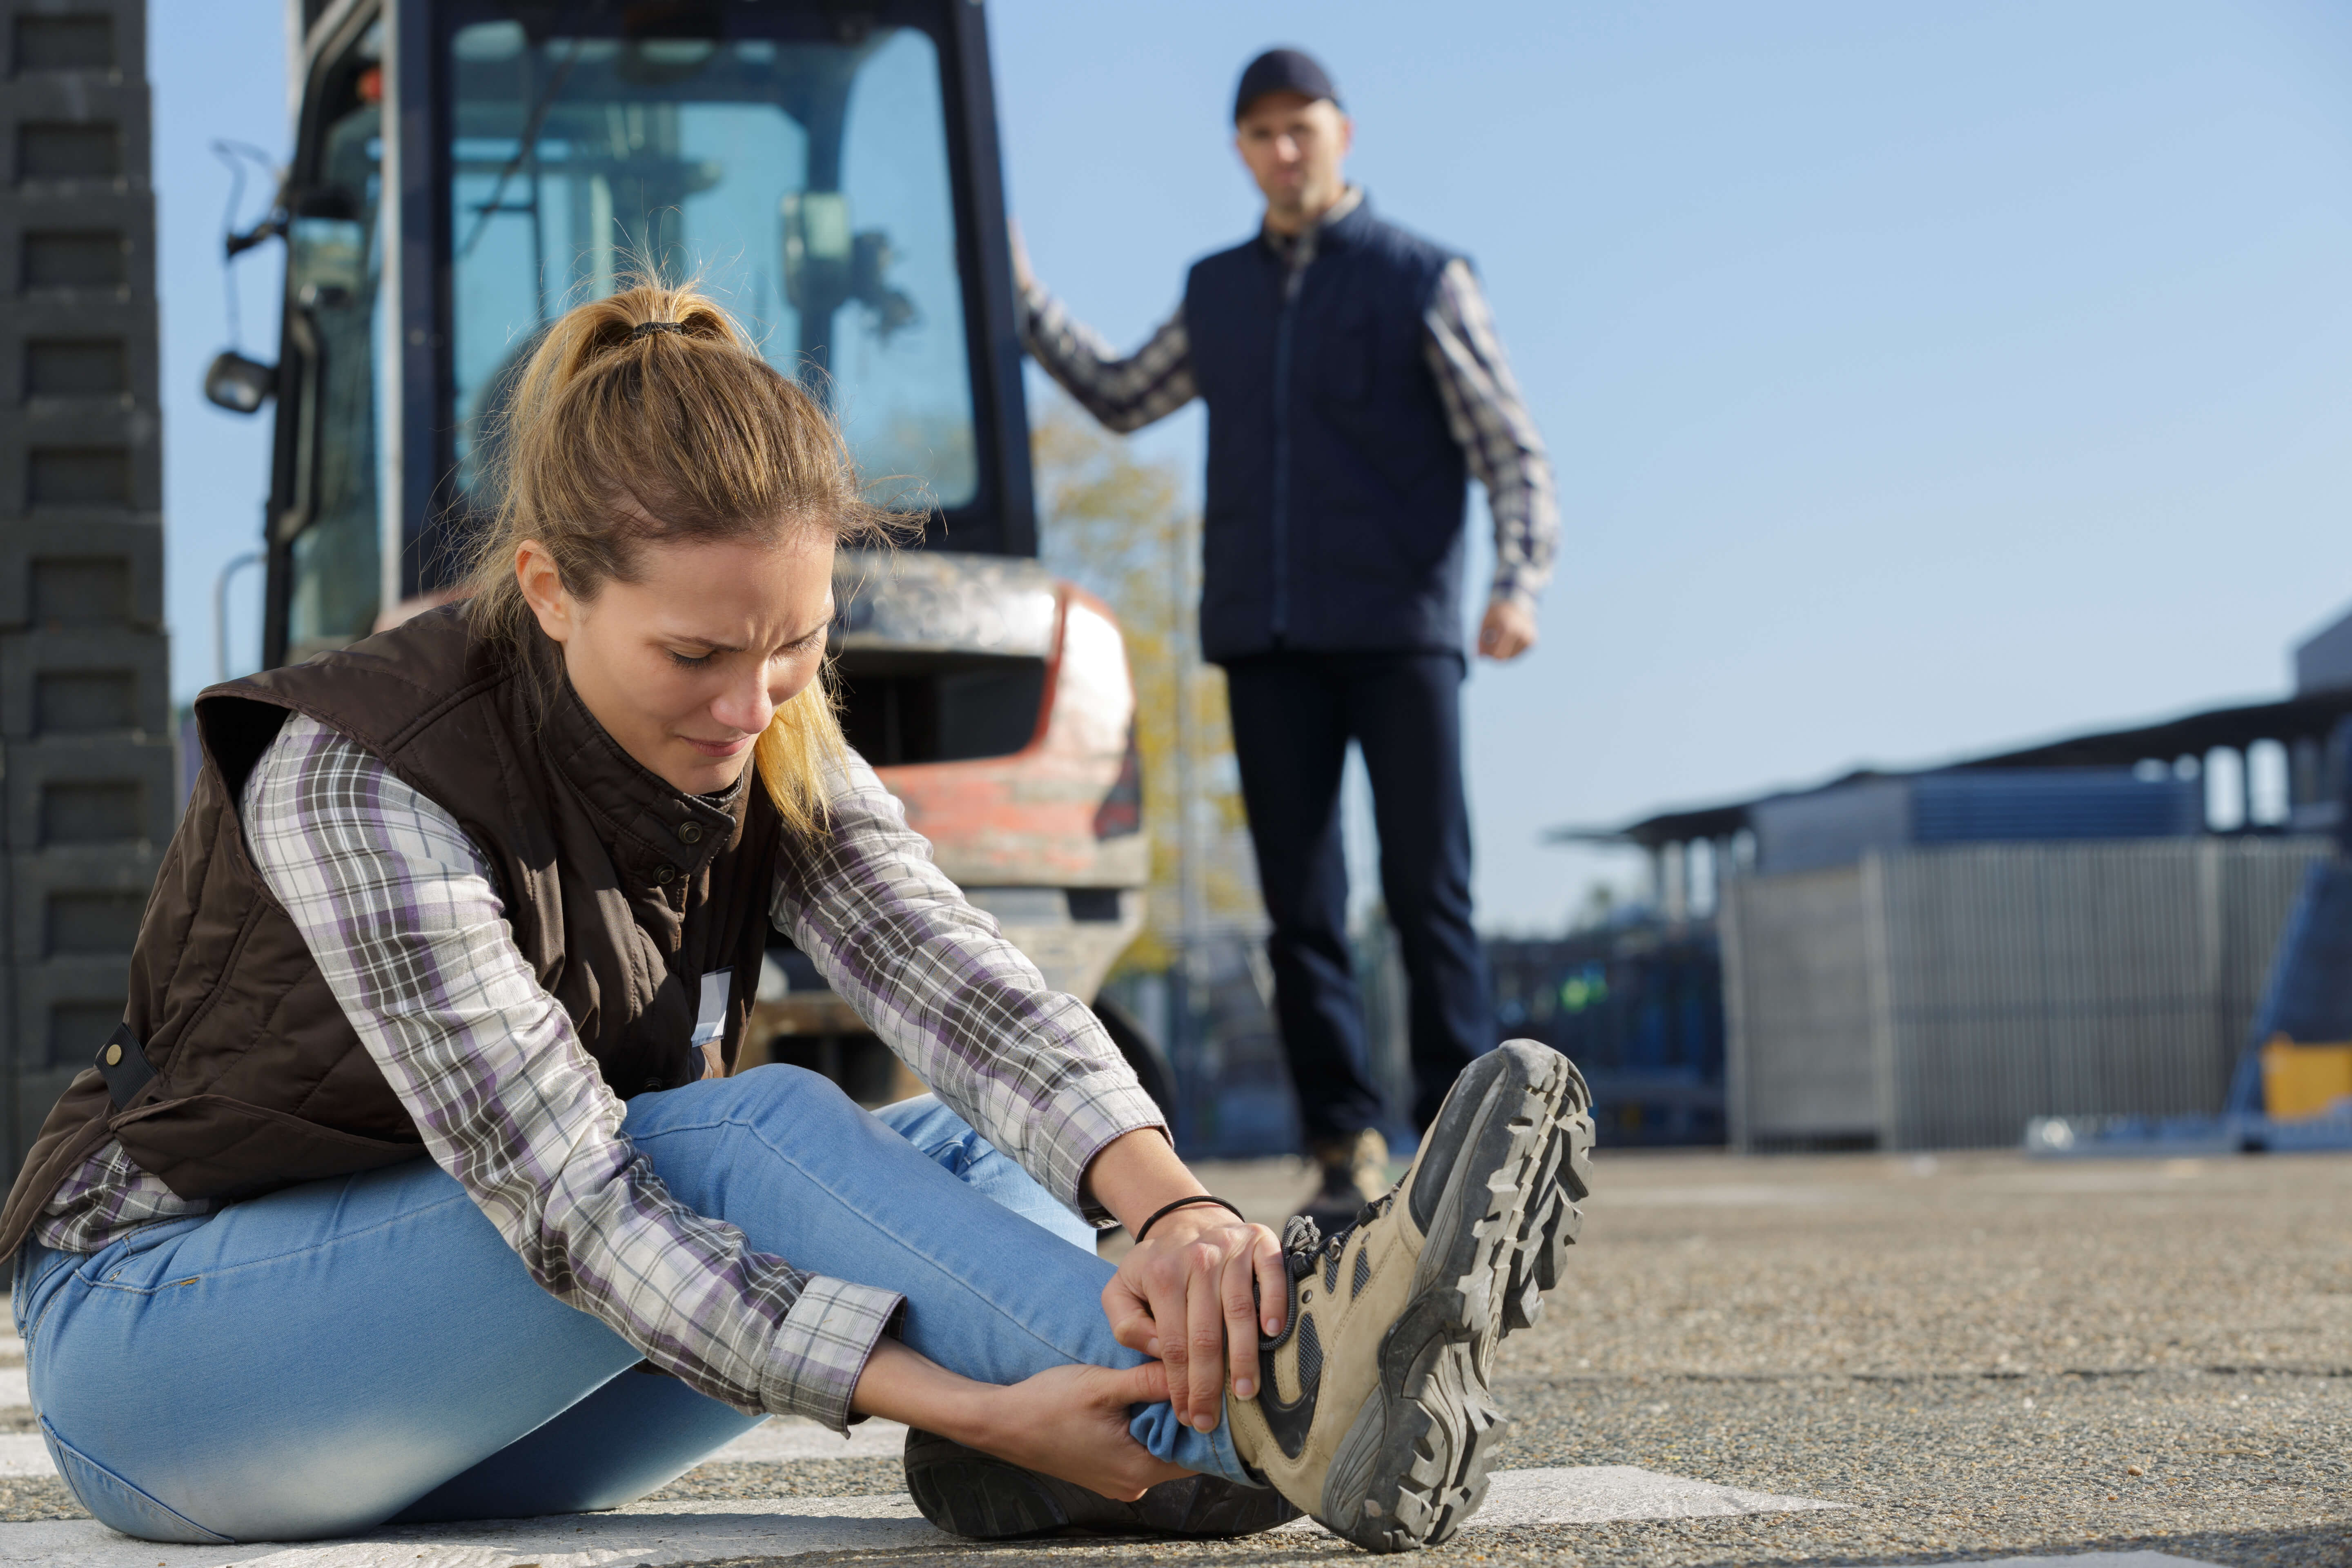 Workers Comp Physical Therapy